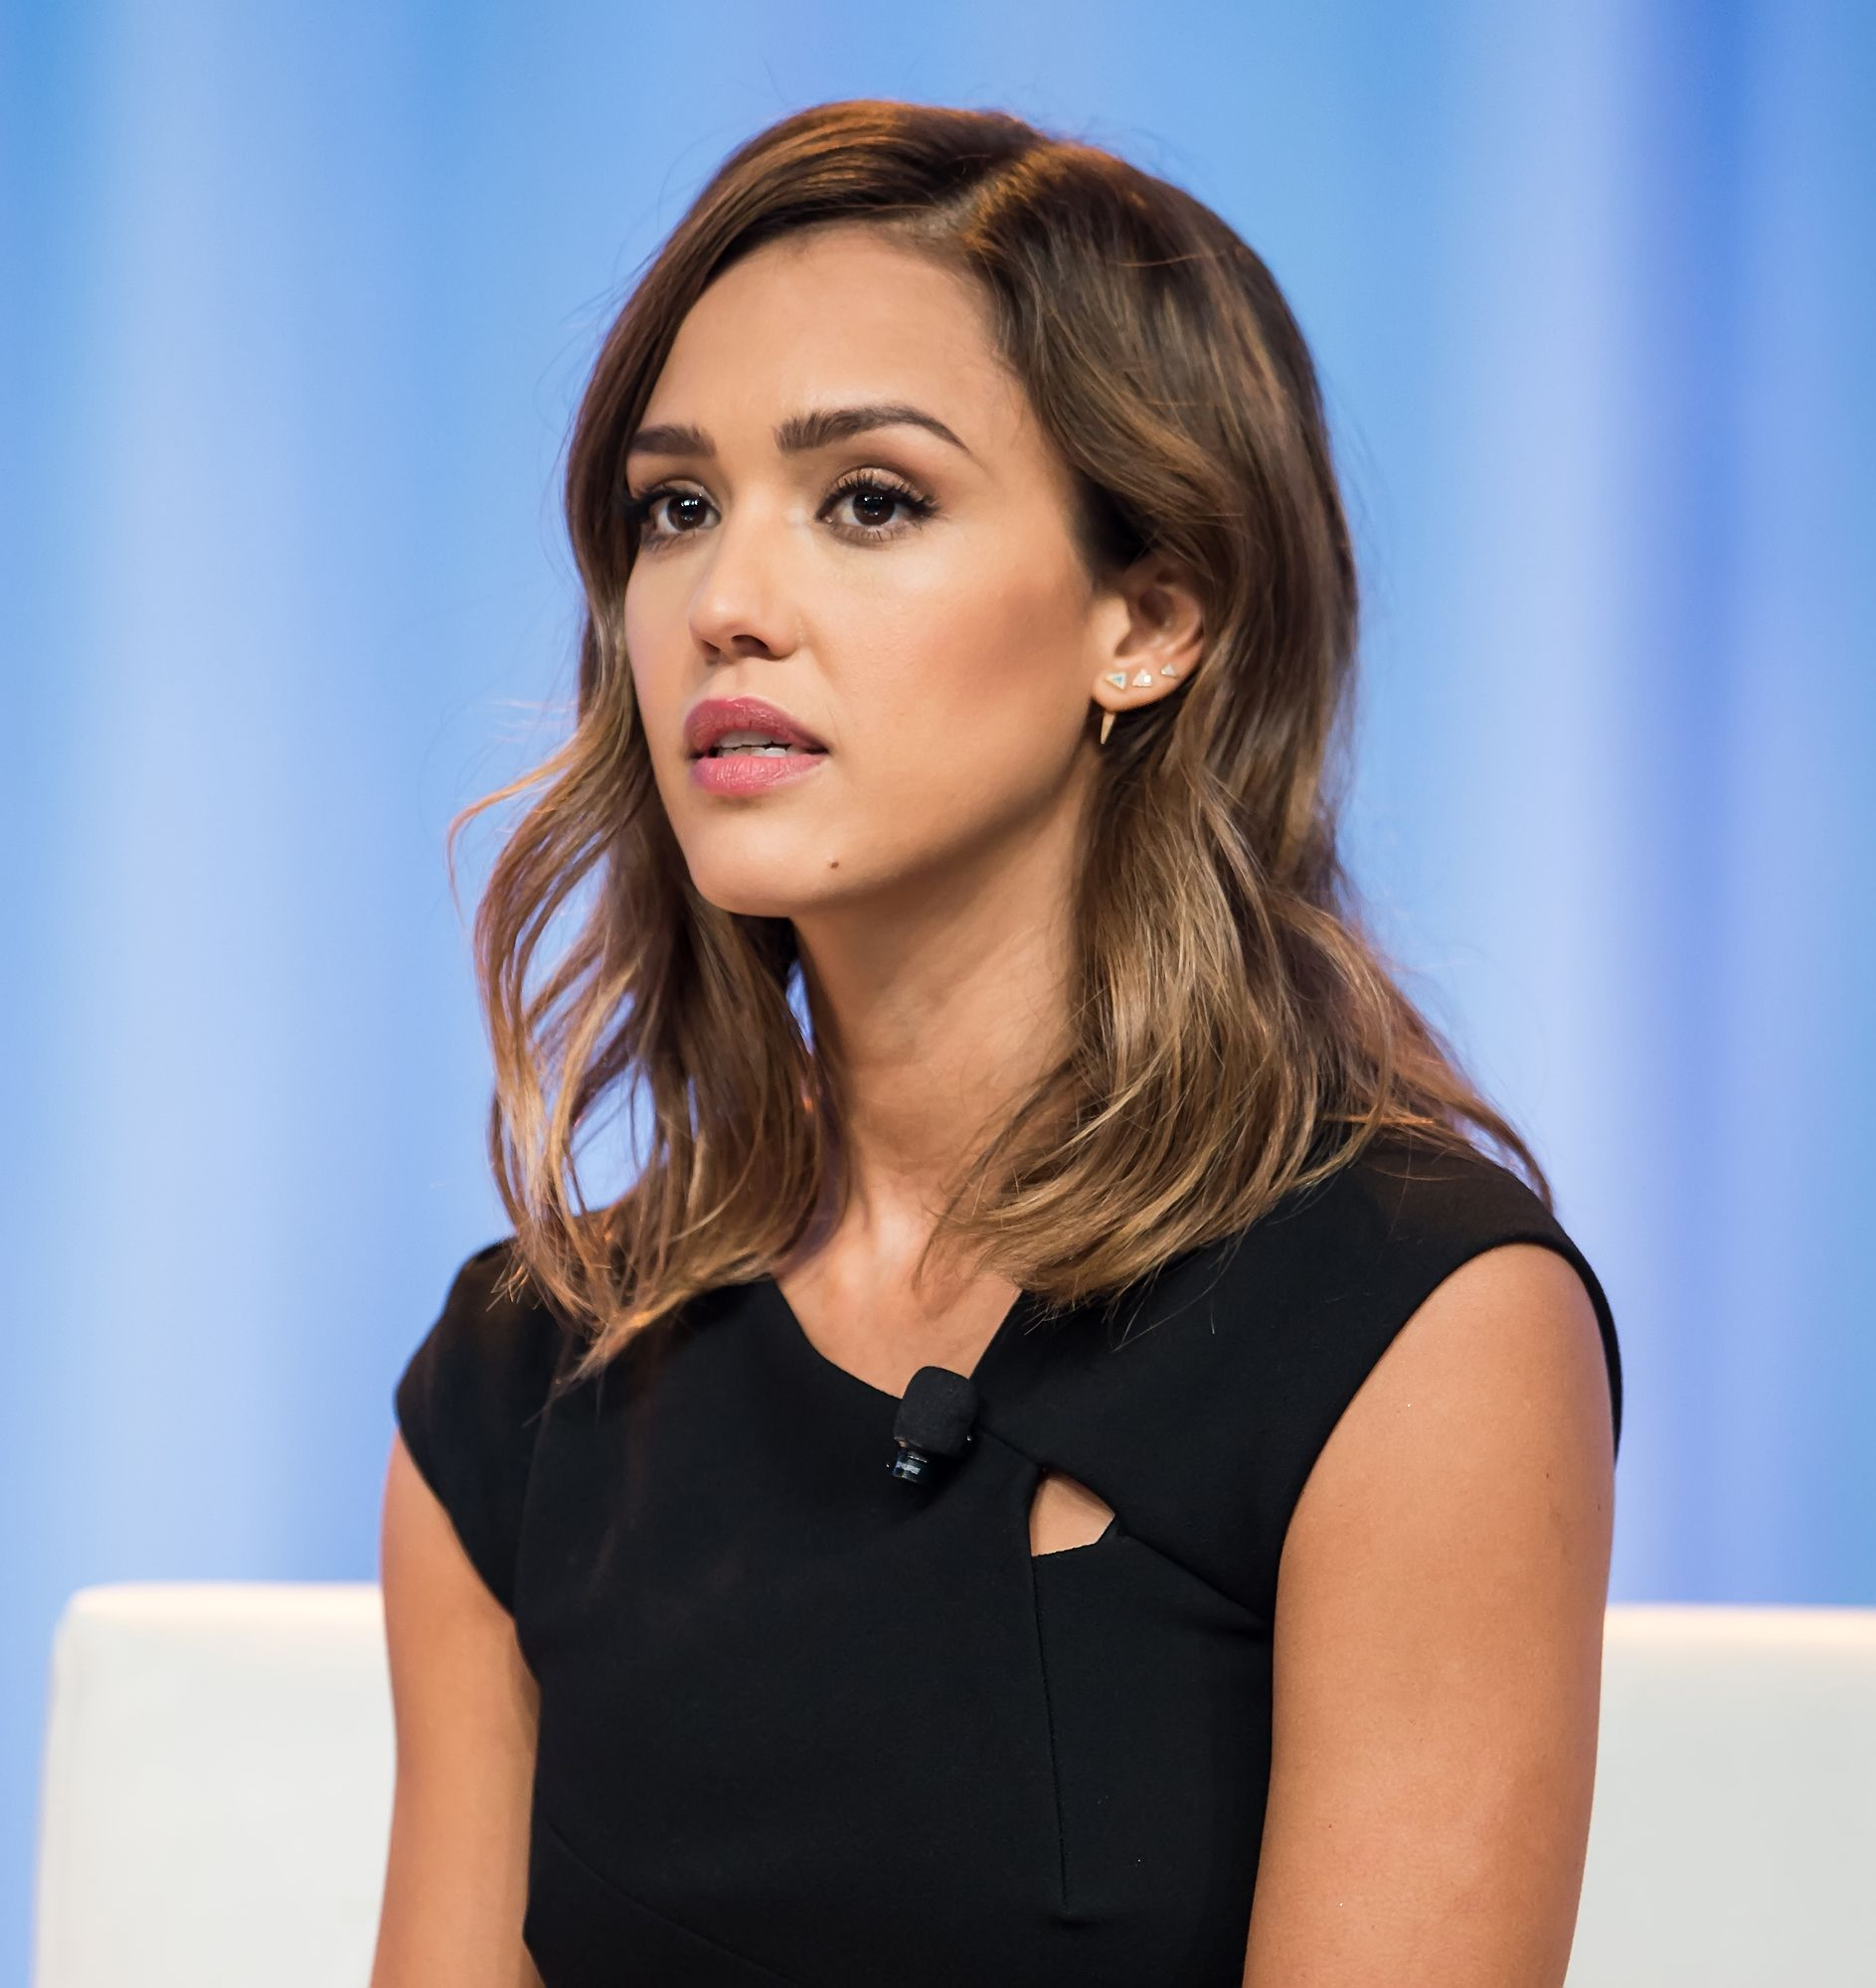 25 Celebrities With Gorgeous Sunkissed Balayage Highlights With Images Jessica Alba Short Hair Jessica Alba Hair Jessica Alba Hair Color